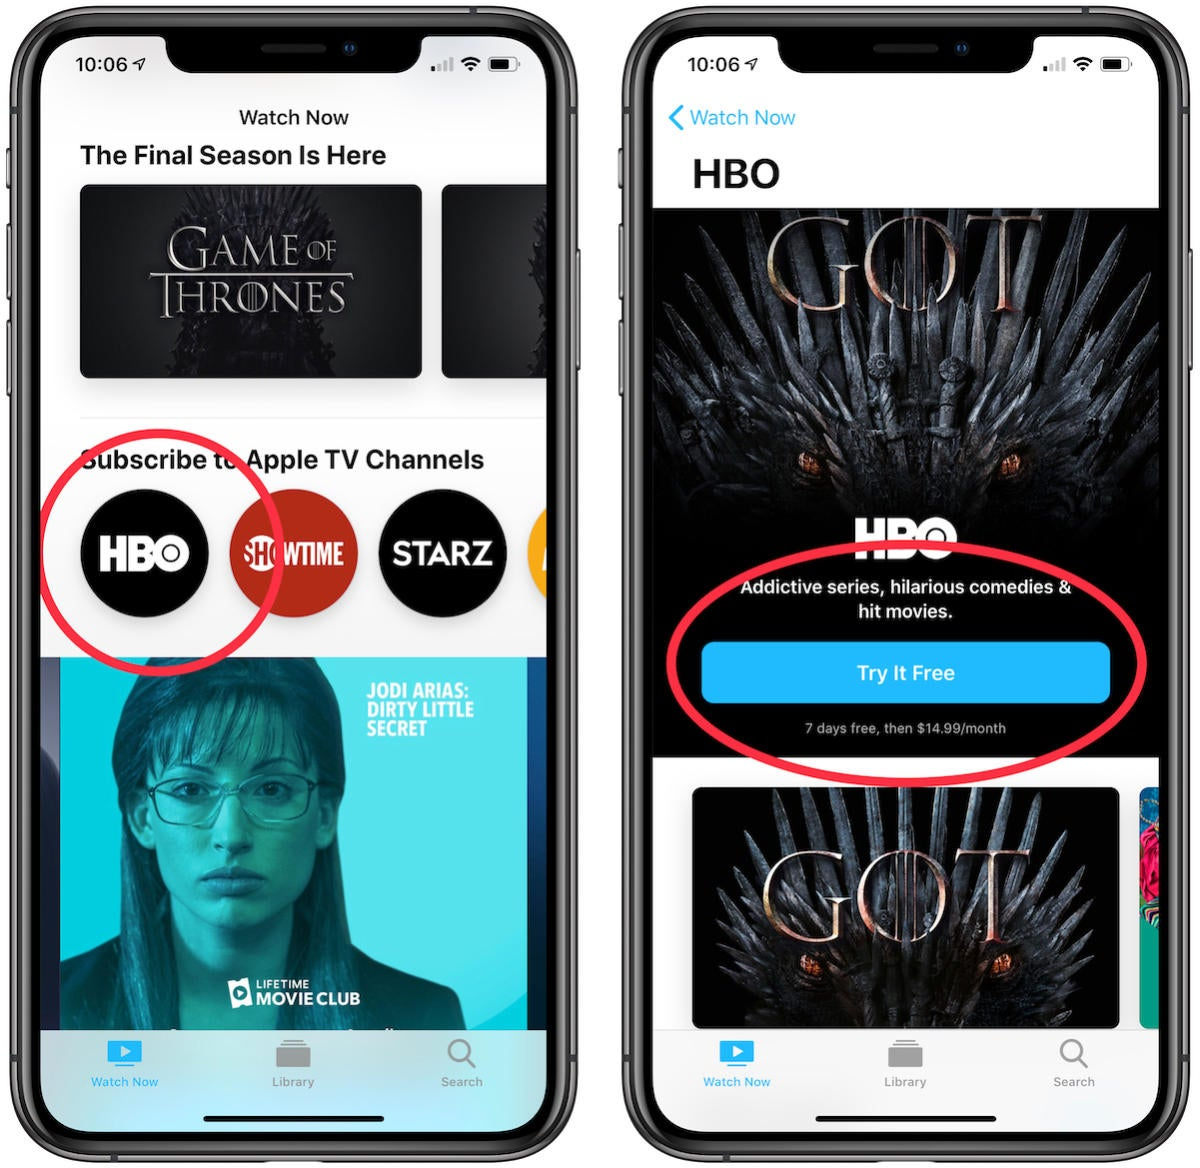 How to download shows for offline viewing the iPhone's Apple